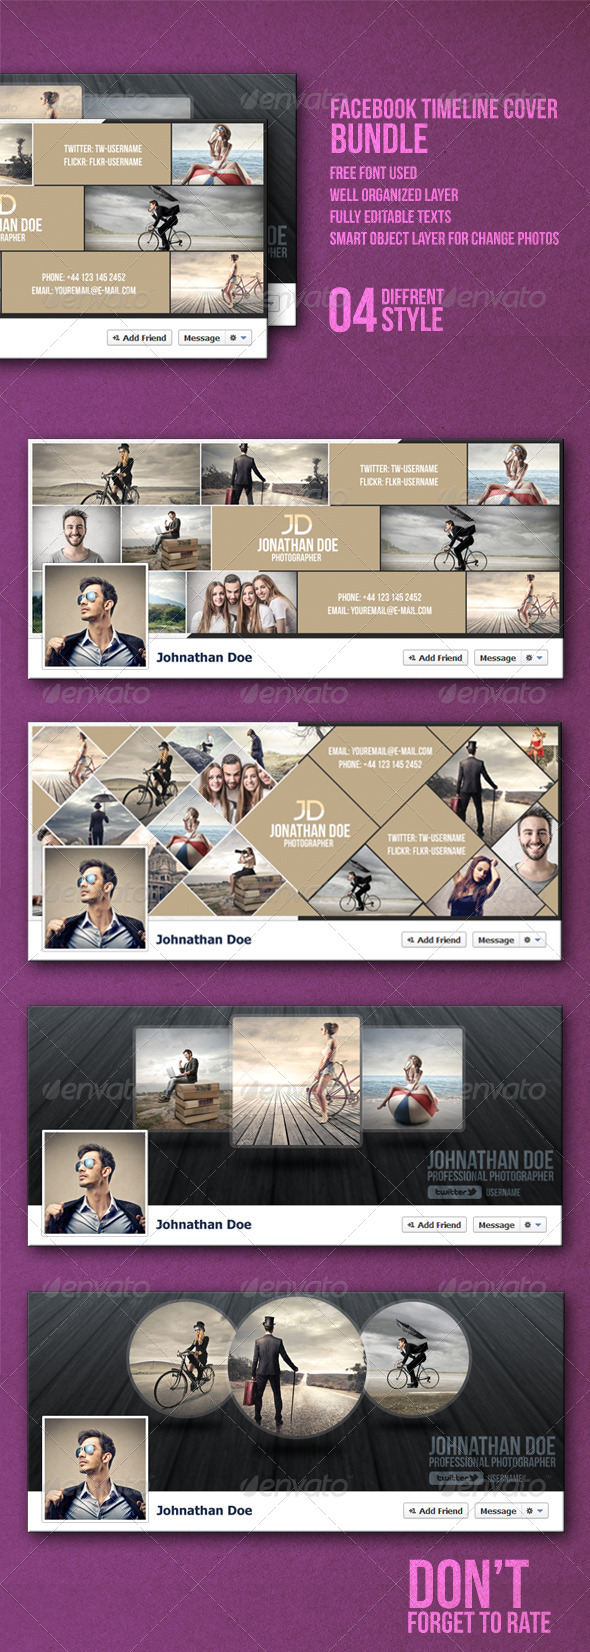 GraphicRiver Facebook Timeline Cover Bundle 8112943